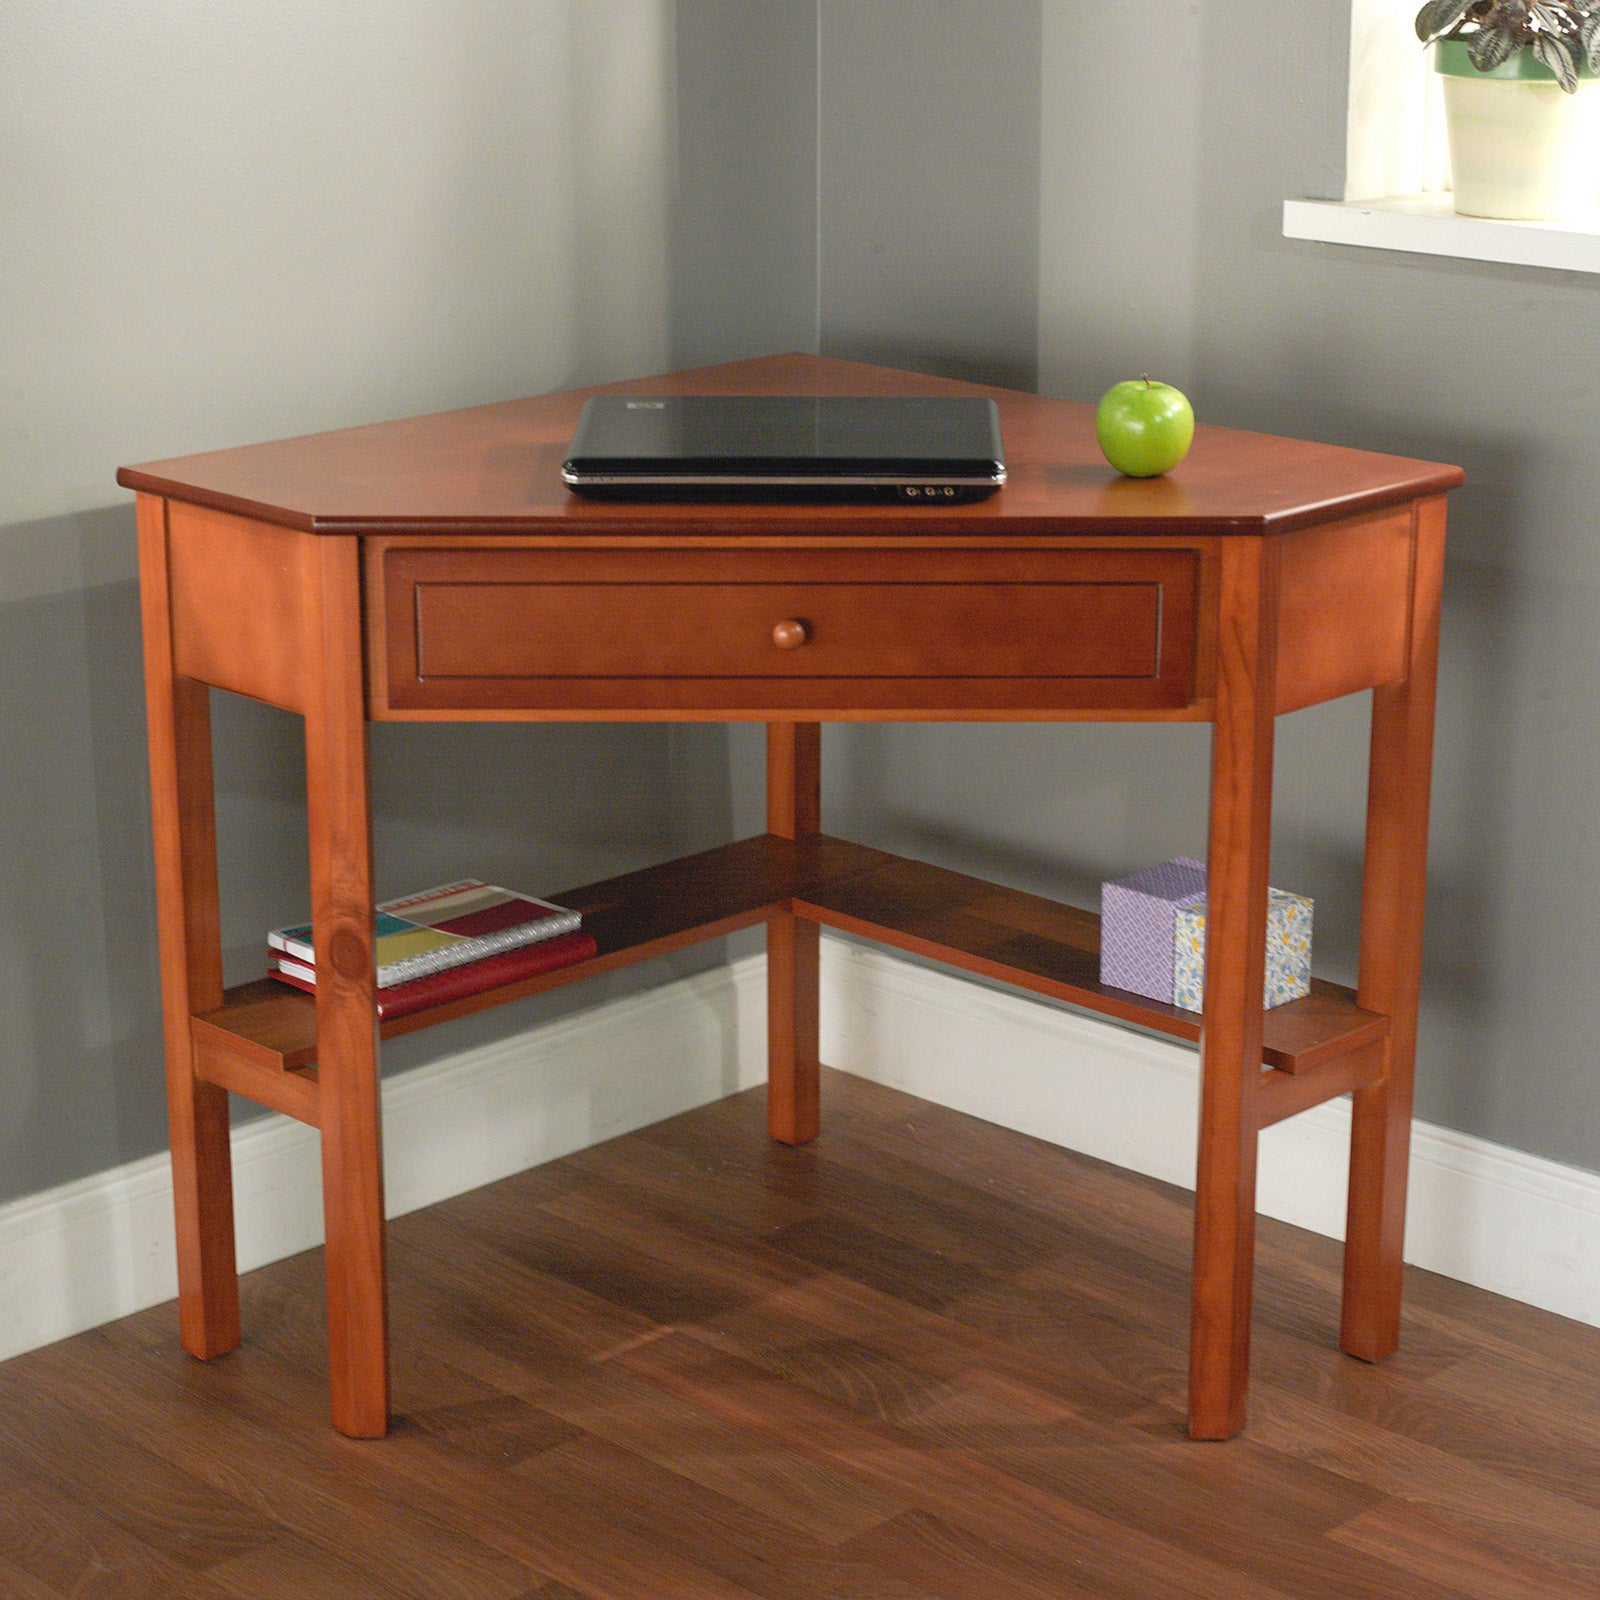 simple living wood corner computer desk overstock shopping great deals on simple living desks. Black Bedroom Furniture Sets. Home Design Ideas